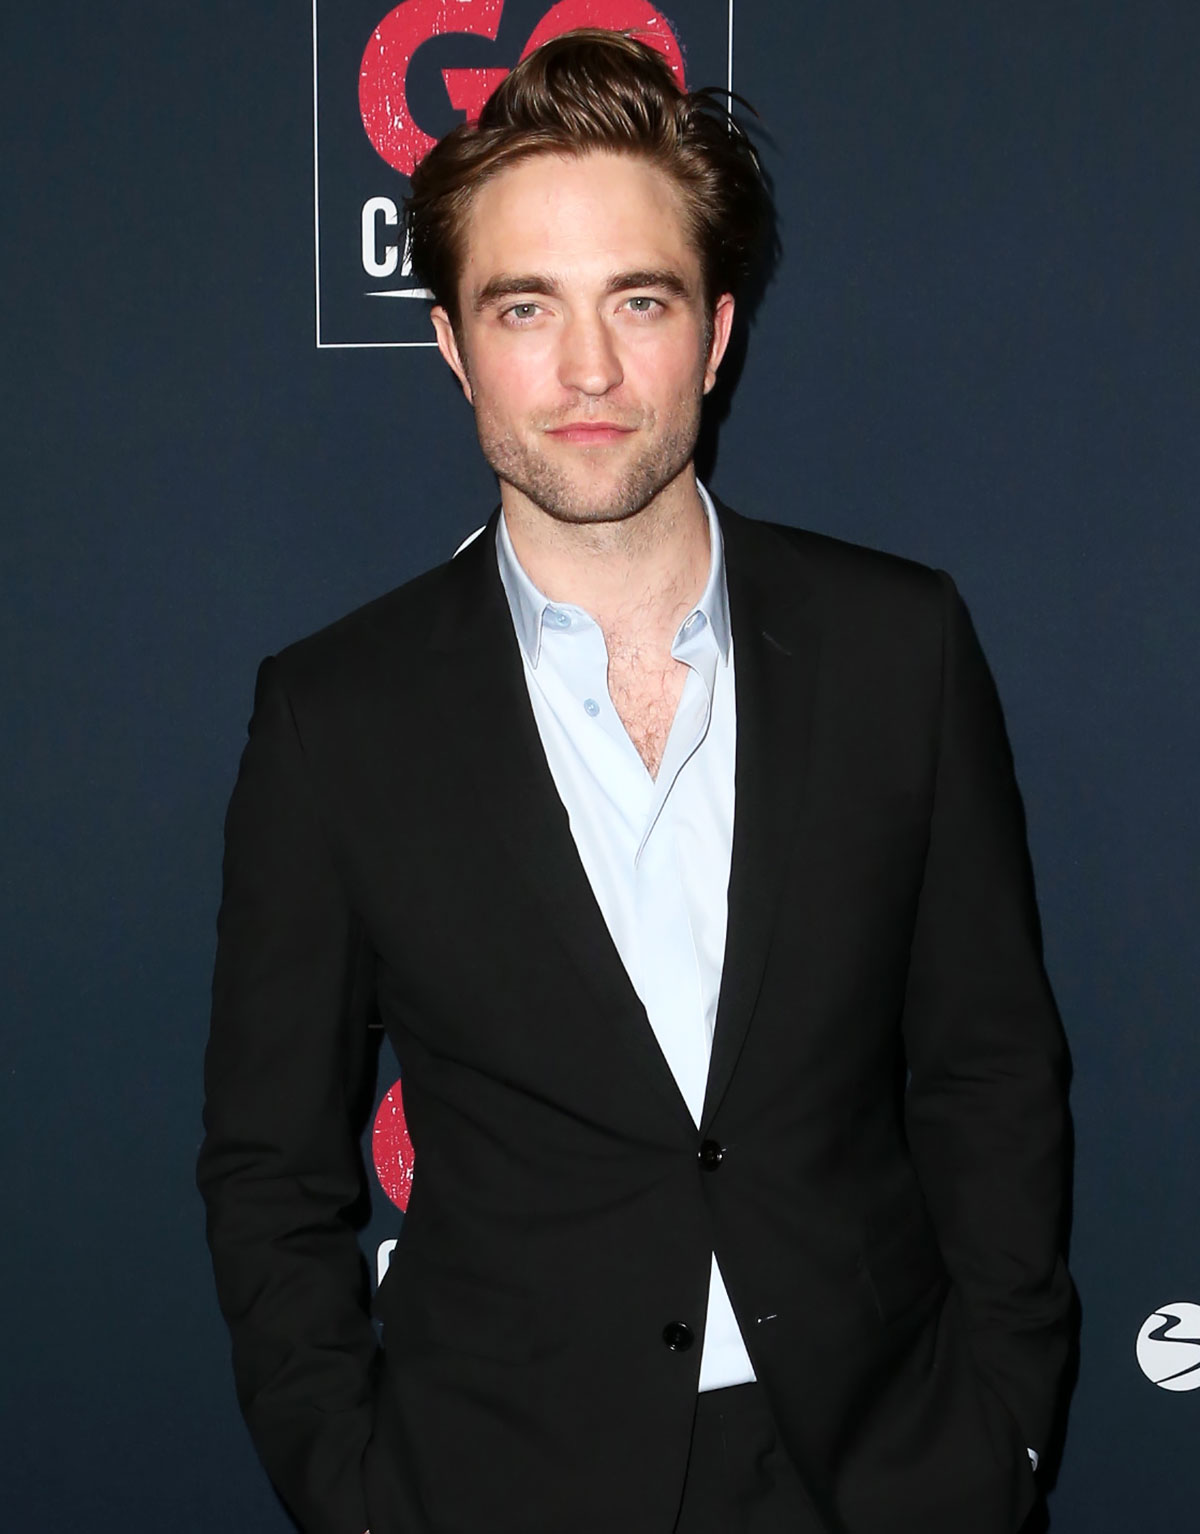 Who does robert pattinson date